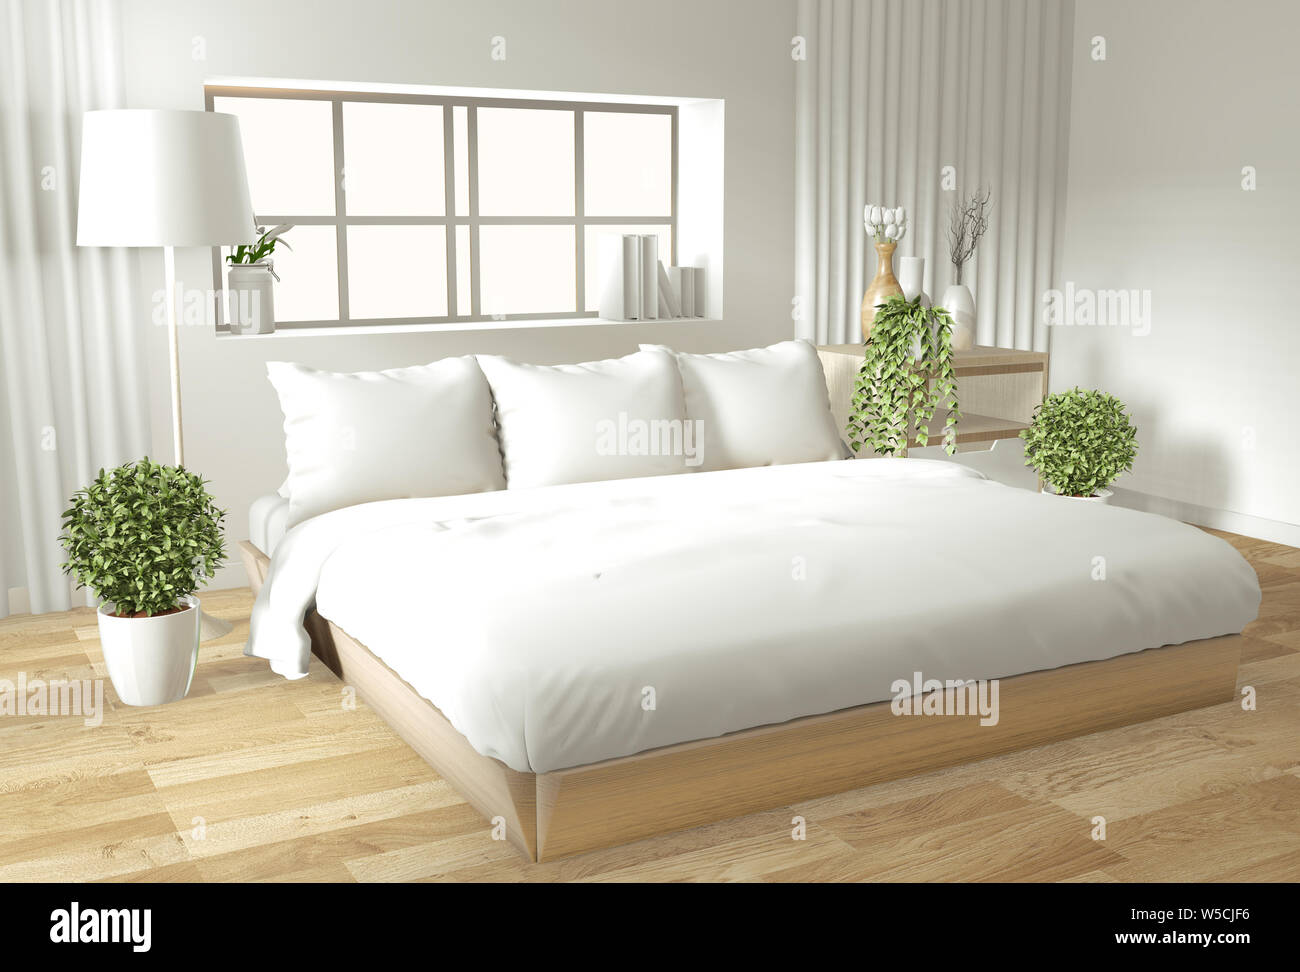 Home interior wall mock up with wooden bed, curtains and ...